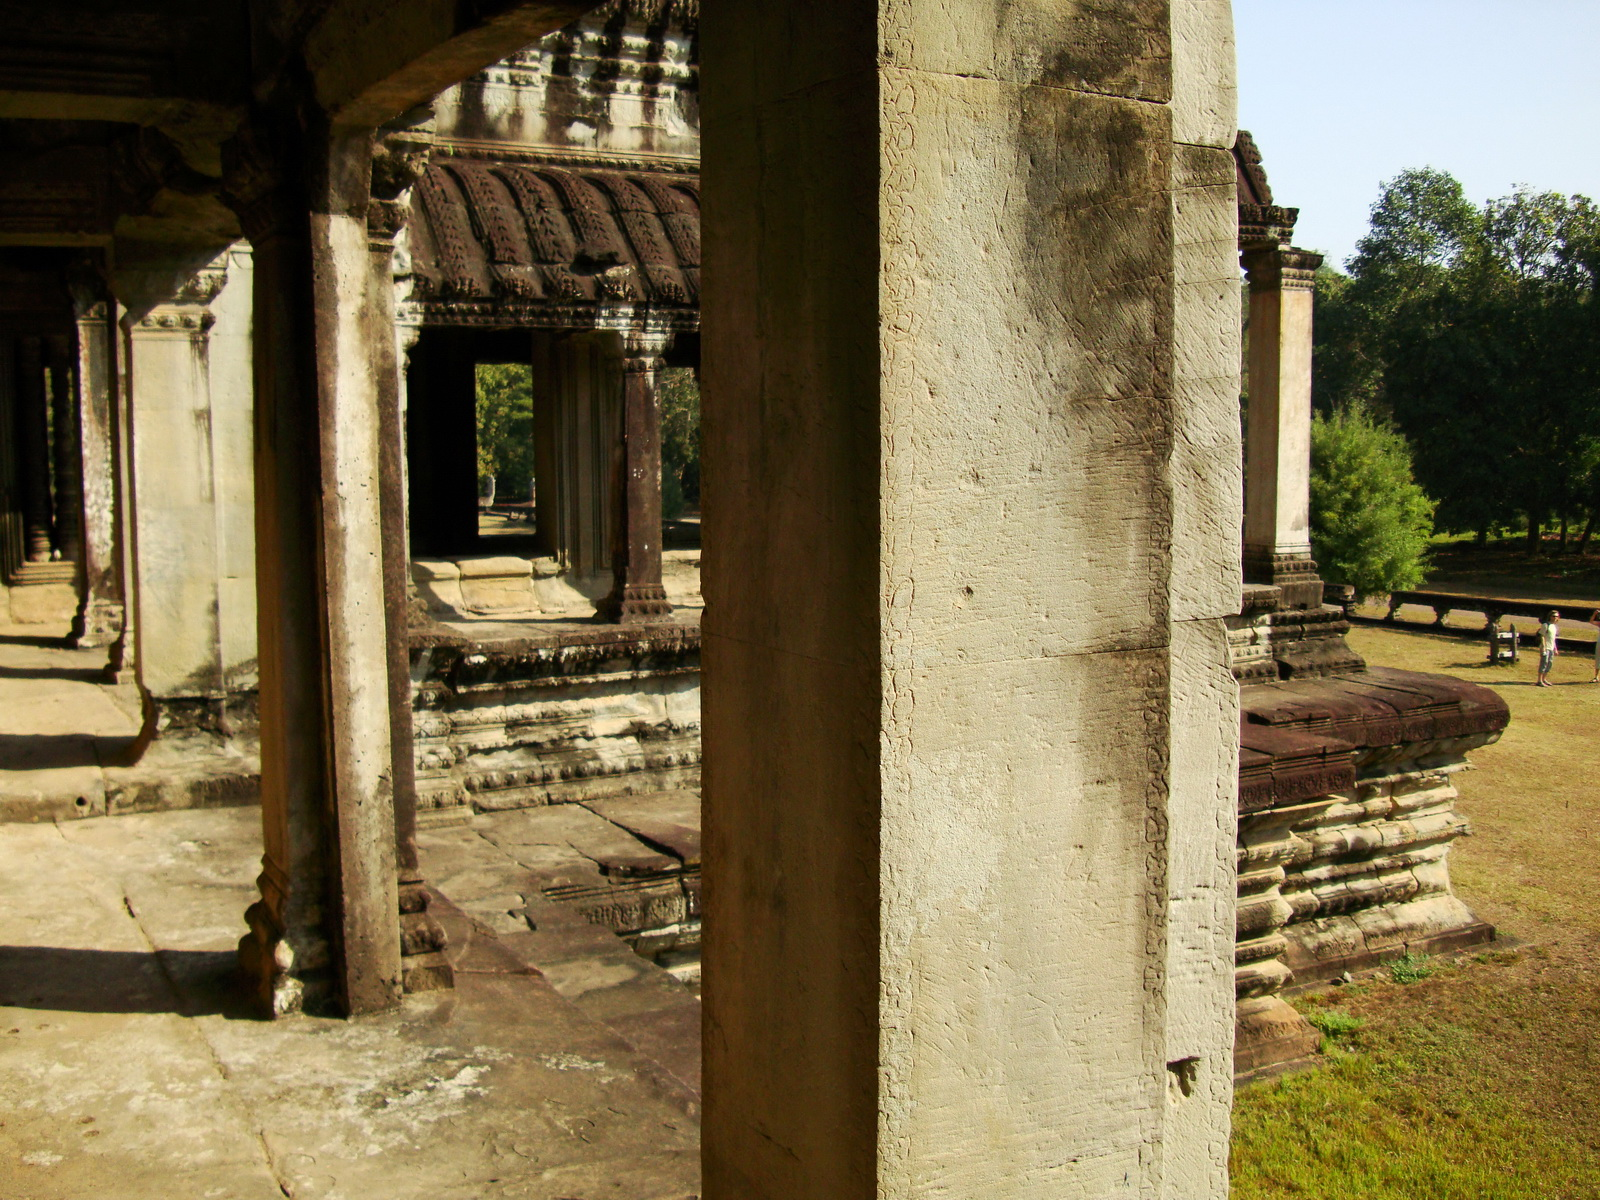 Khmer architecture east gallery south wing passageways 01